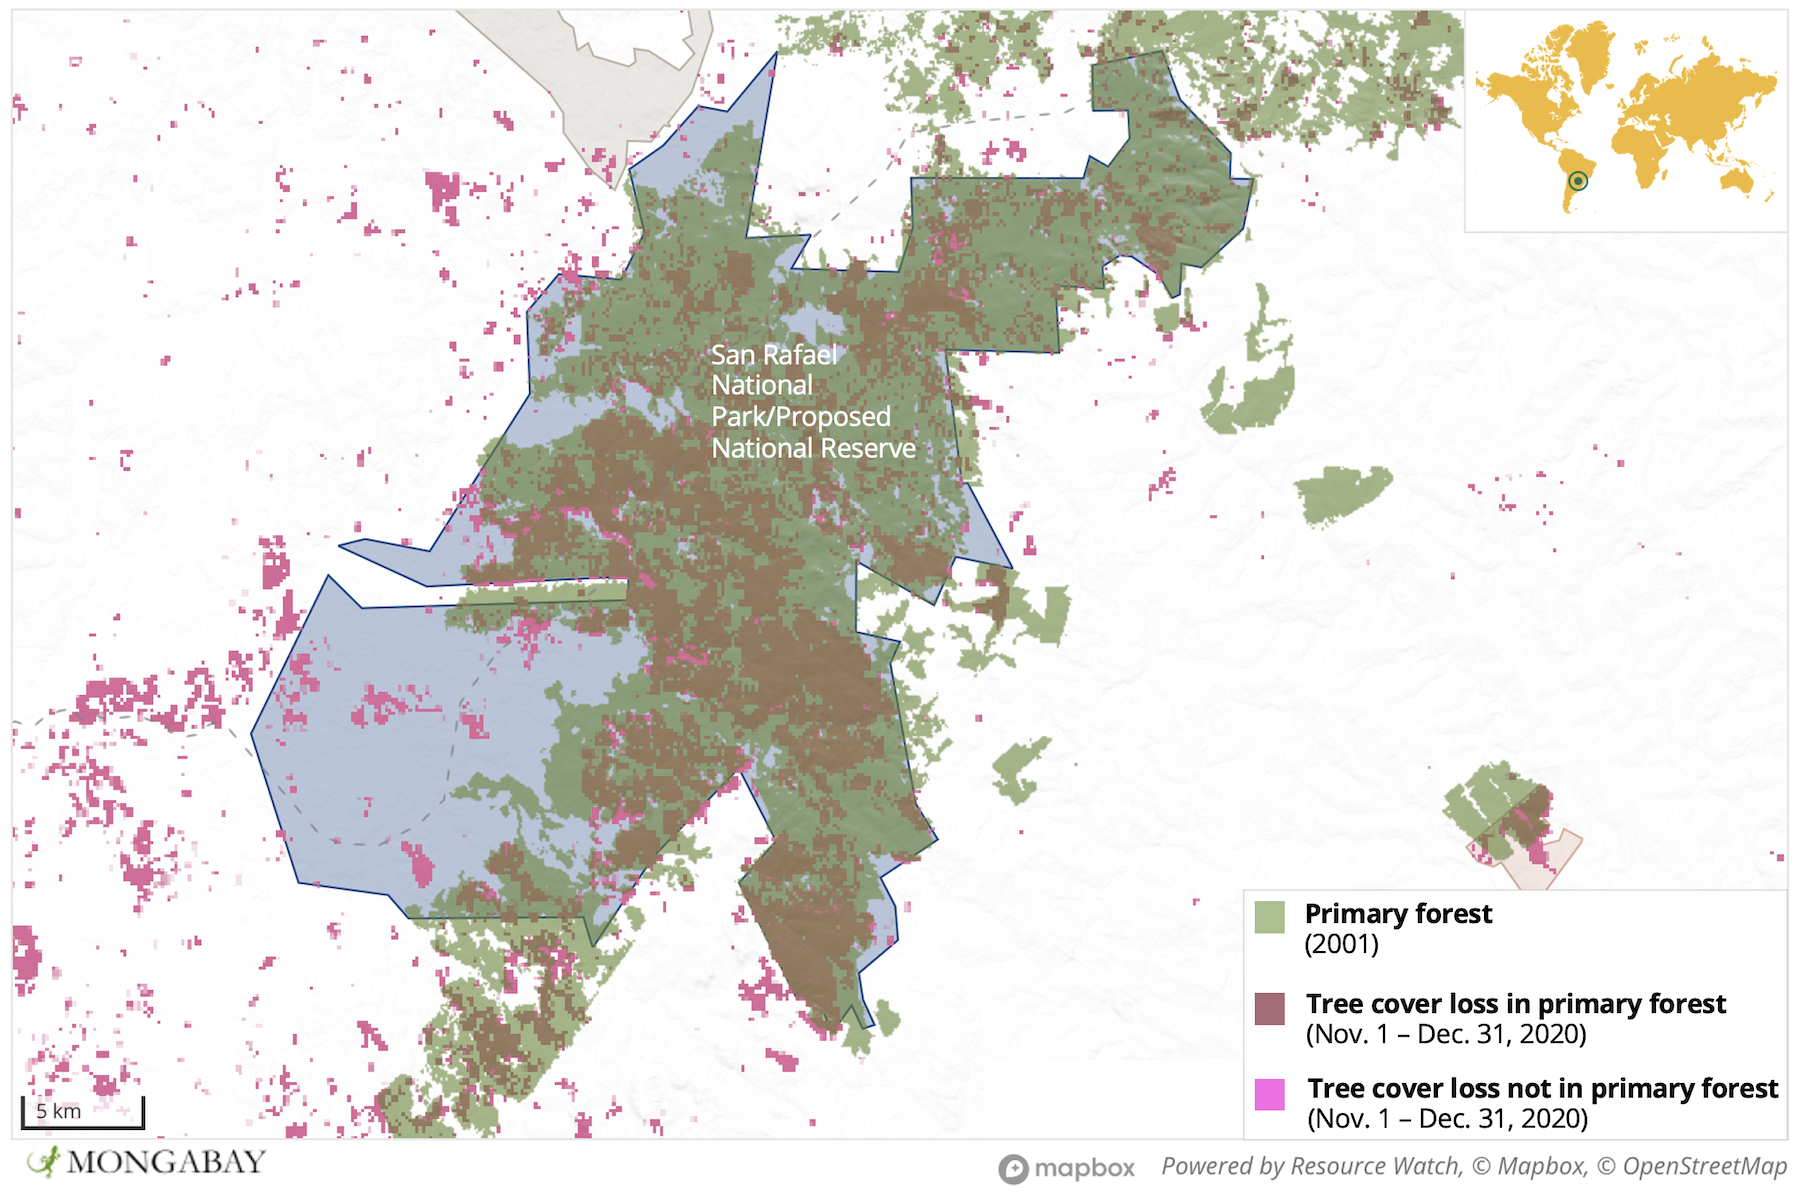 2020's fires burned a large proportion of San Rafael's primary forest.